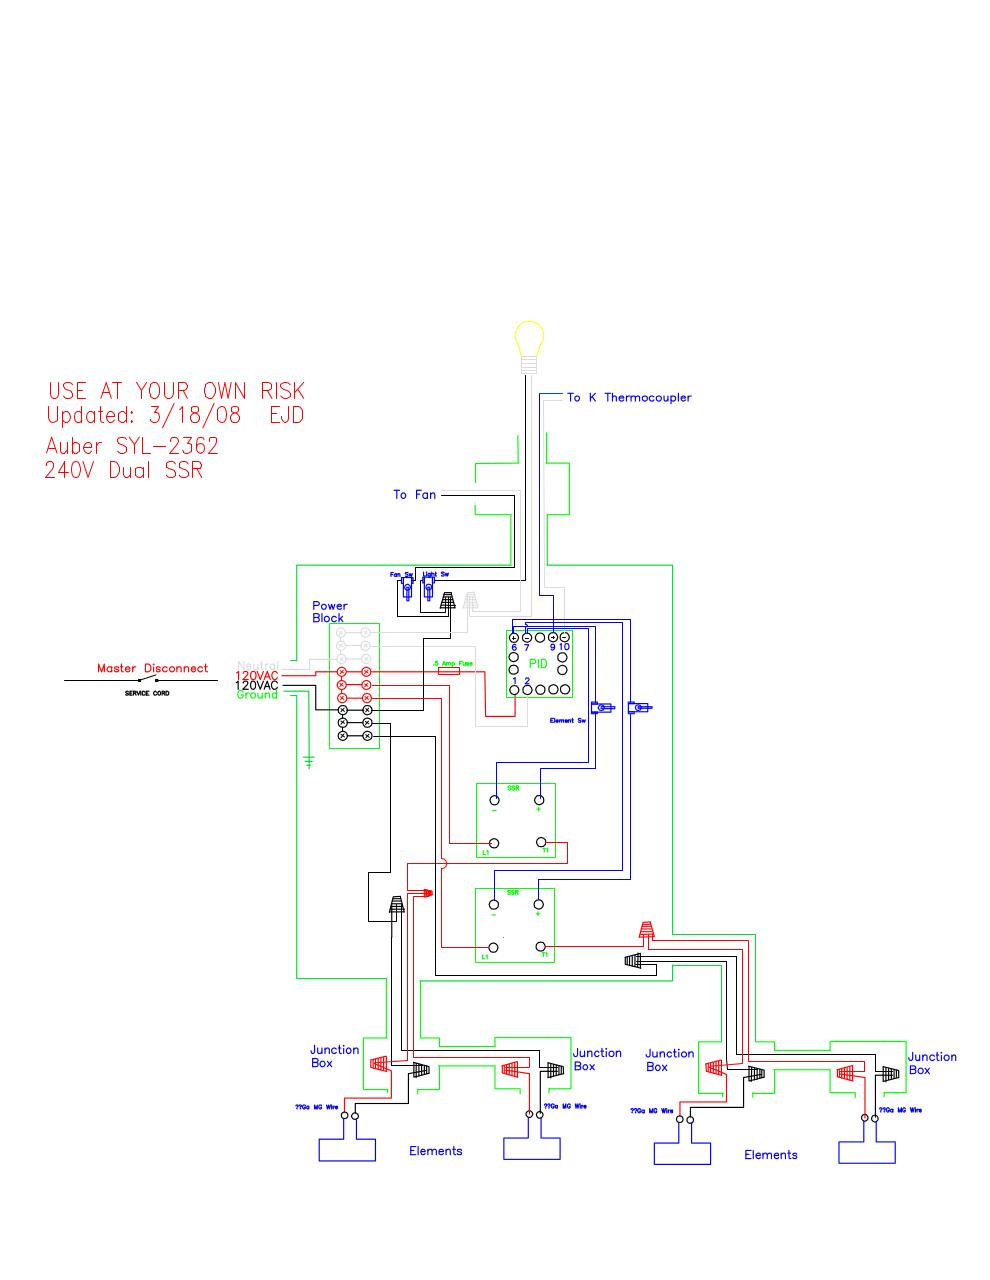 Auber Pid Wiring Diagram Electrical Schematic Diagrams Controller